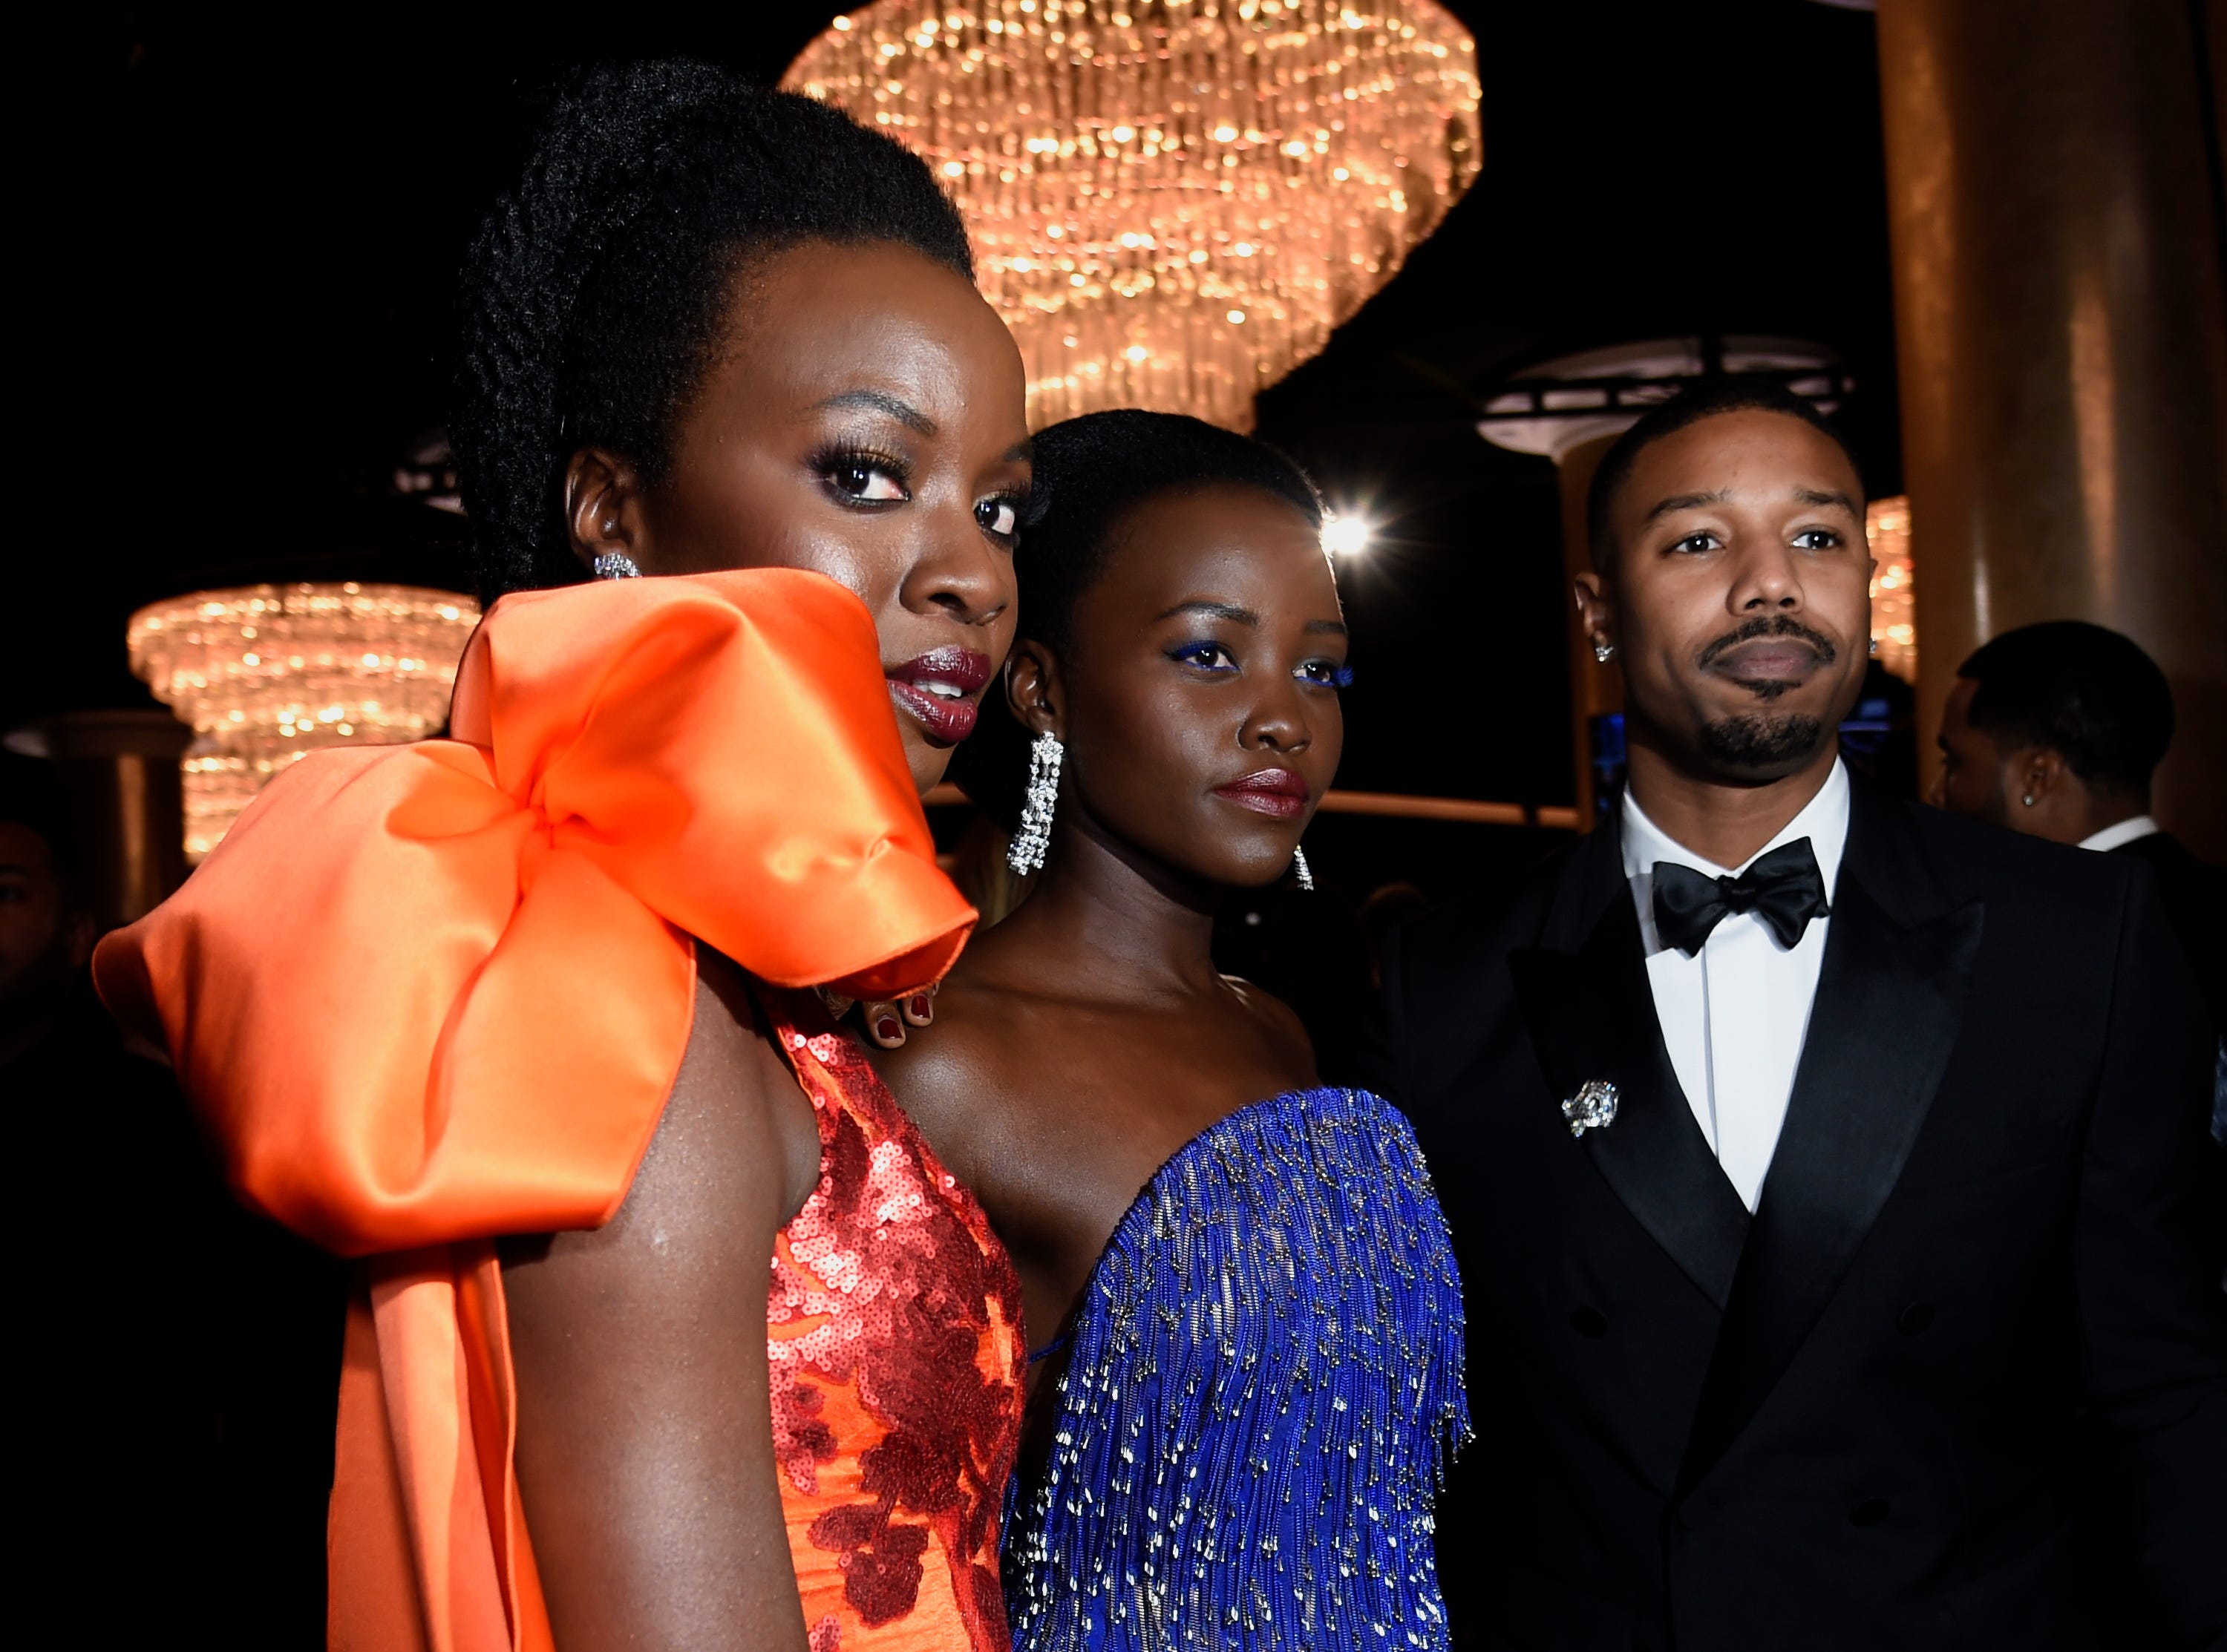 Danai Gurira, from left, Lupita Nyong'o and Michael B. Jordan attend the 76th annual Golden Globe Awards at the Beverly Hilton Hotel.